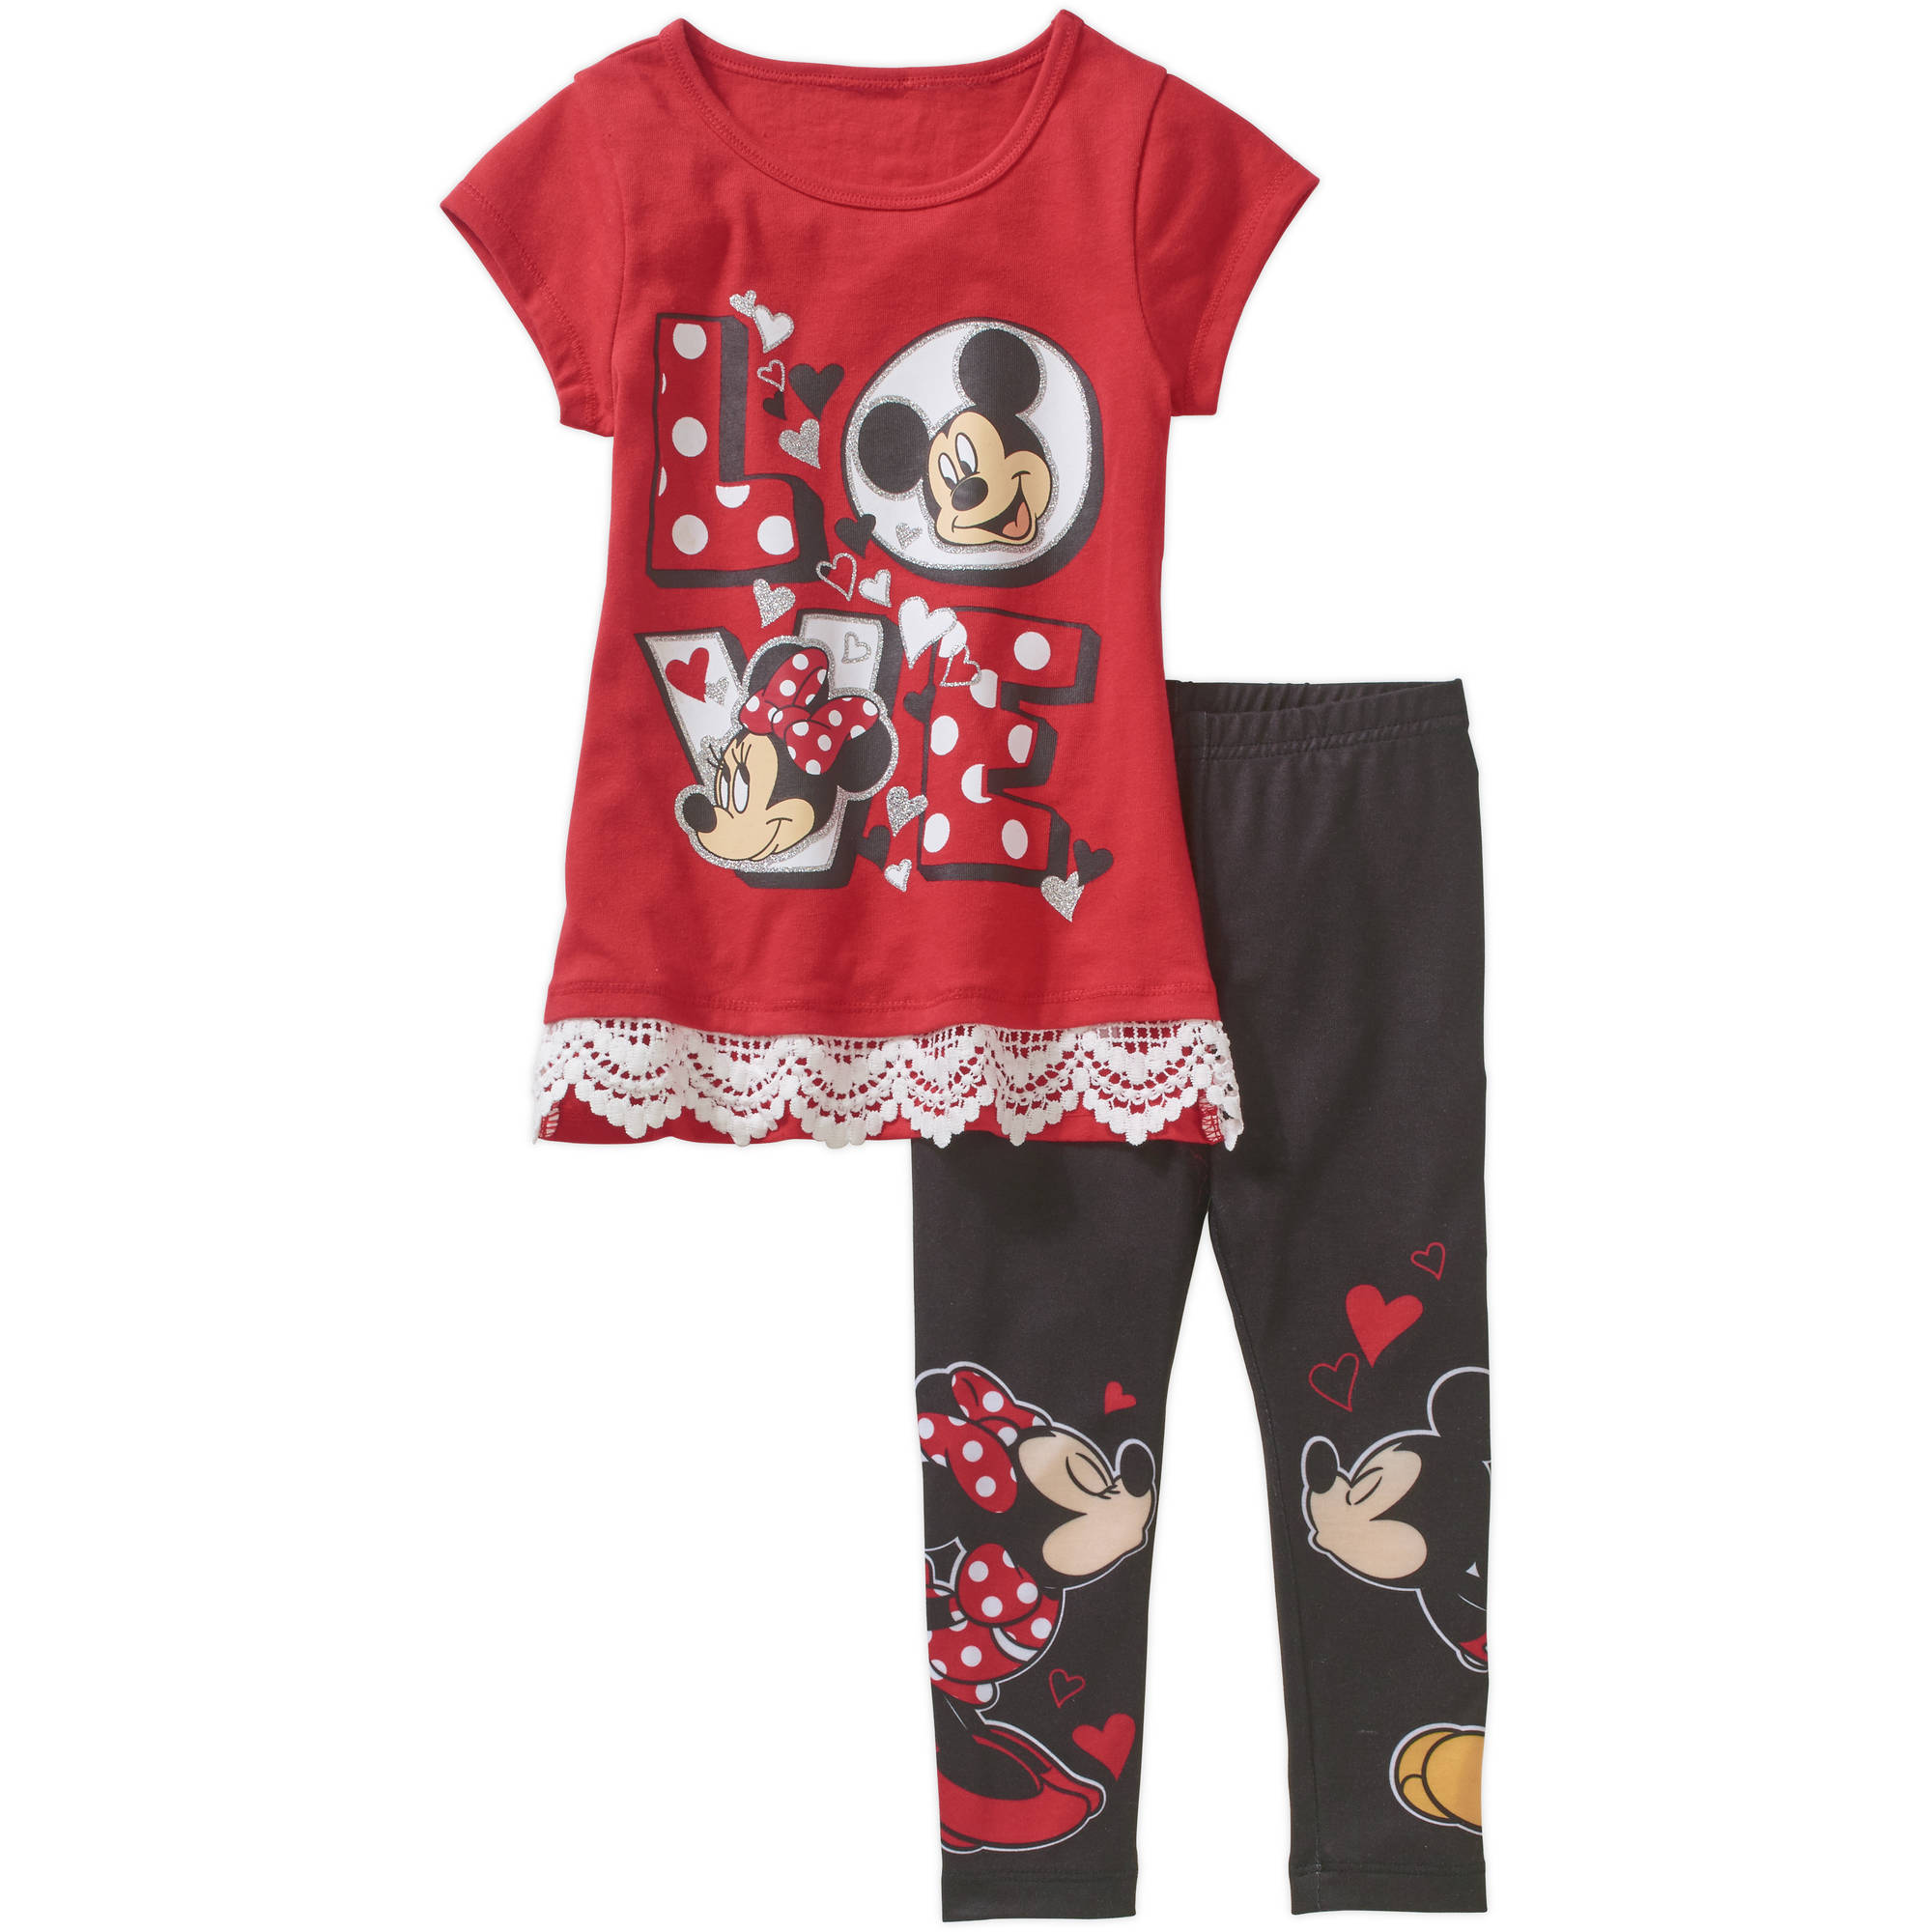 Minnie Mouse Toddler Girl Lace Trim Tunic and Leggings Outfit Set